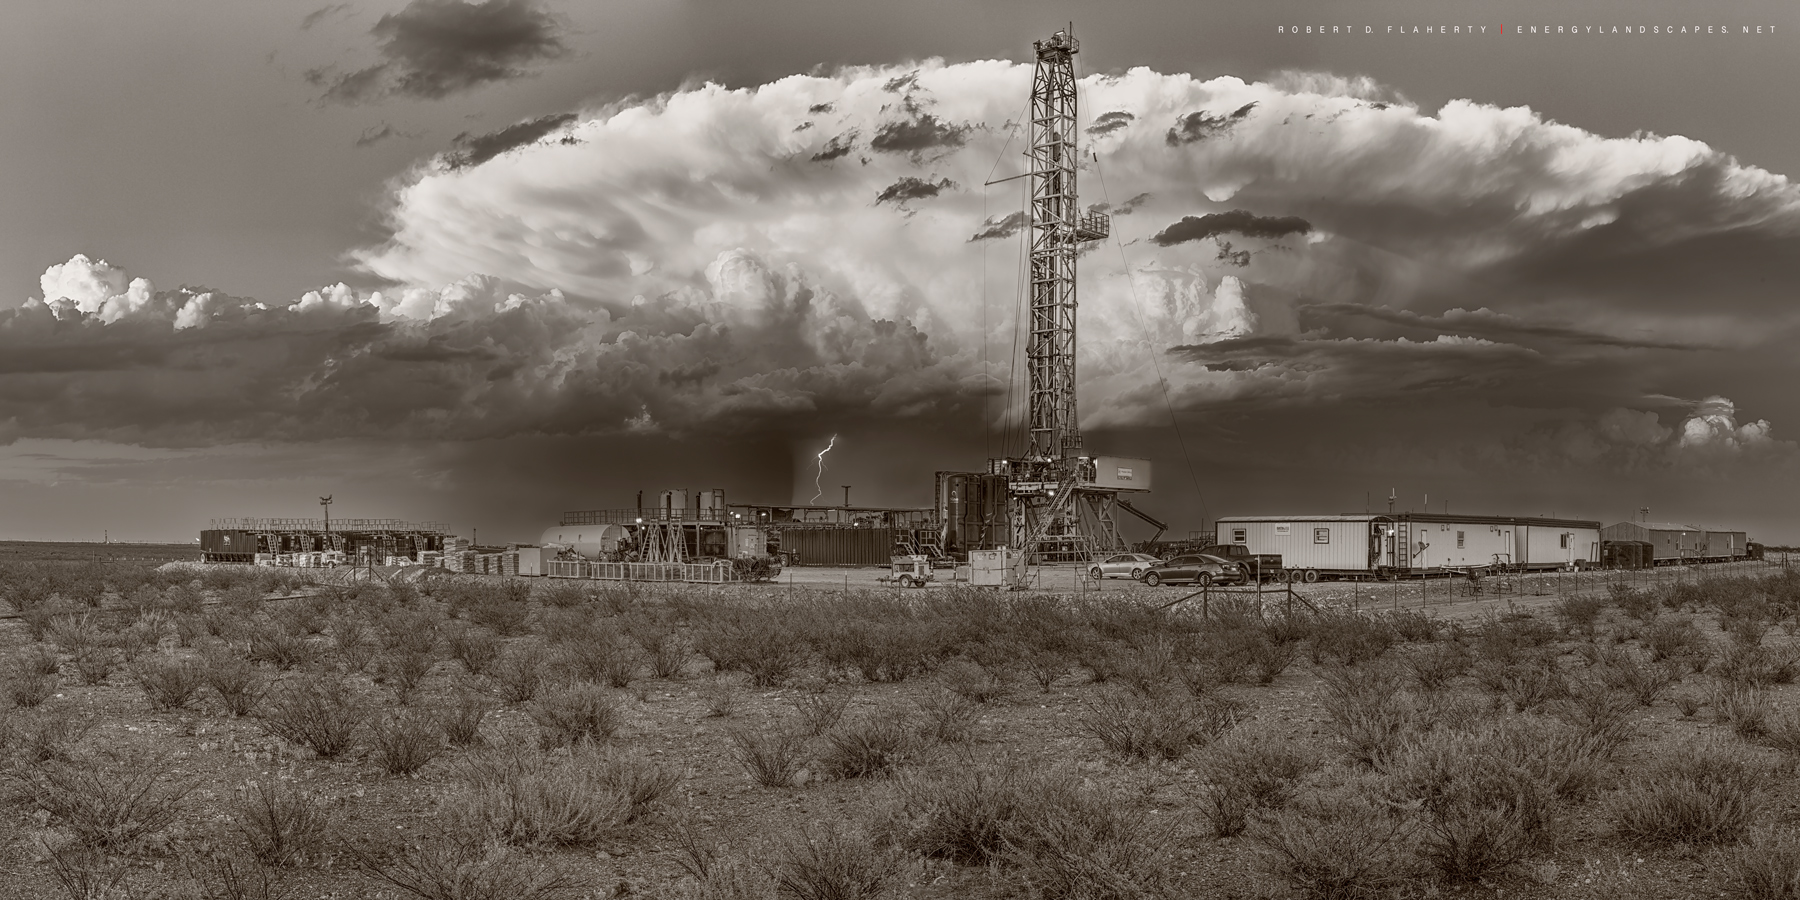 high resolution, panorama, sepia, black & white, drilling rig, lateral well, thunderstorm, lightning, sepia toned, Contango Oil & Gas, Spring, Precision Drilling Corp. rig 555, Delaware Basin, West Te, photo